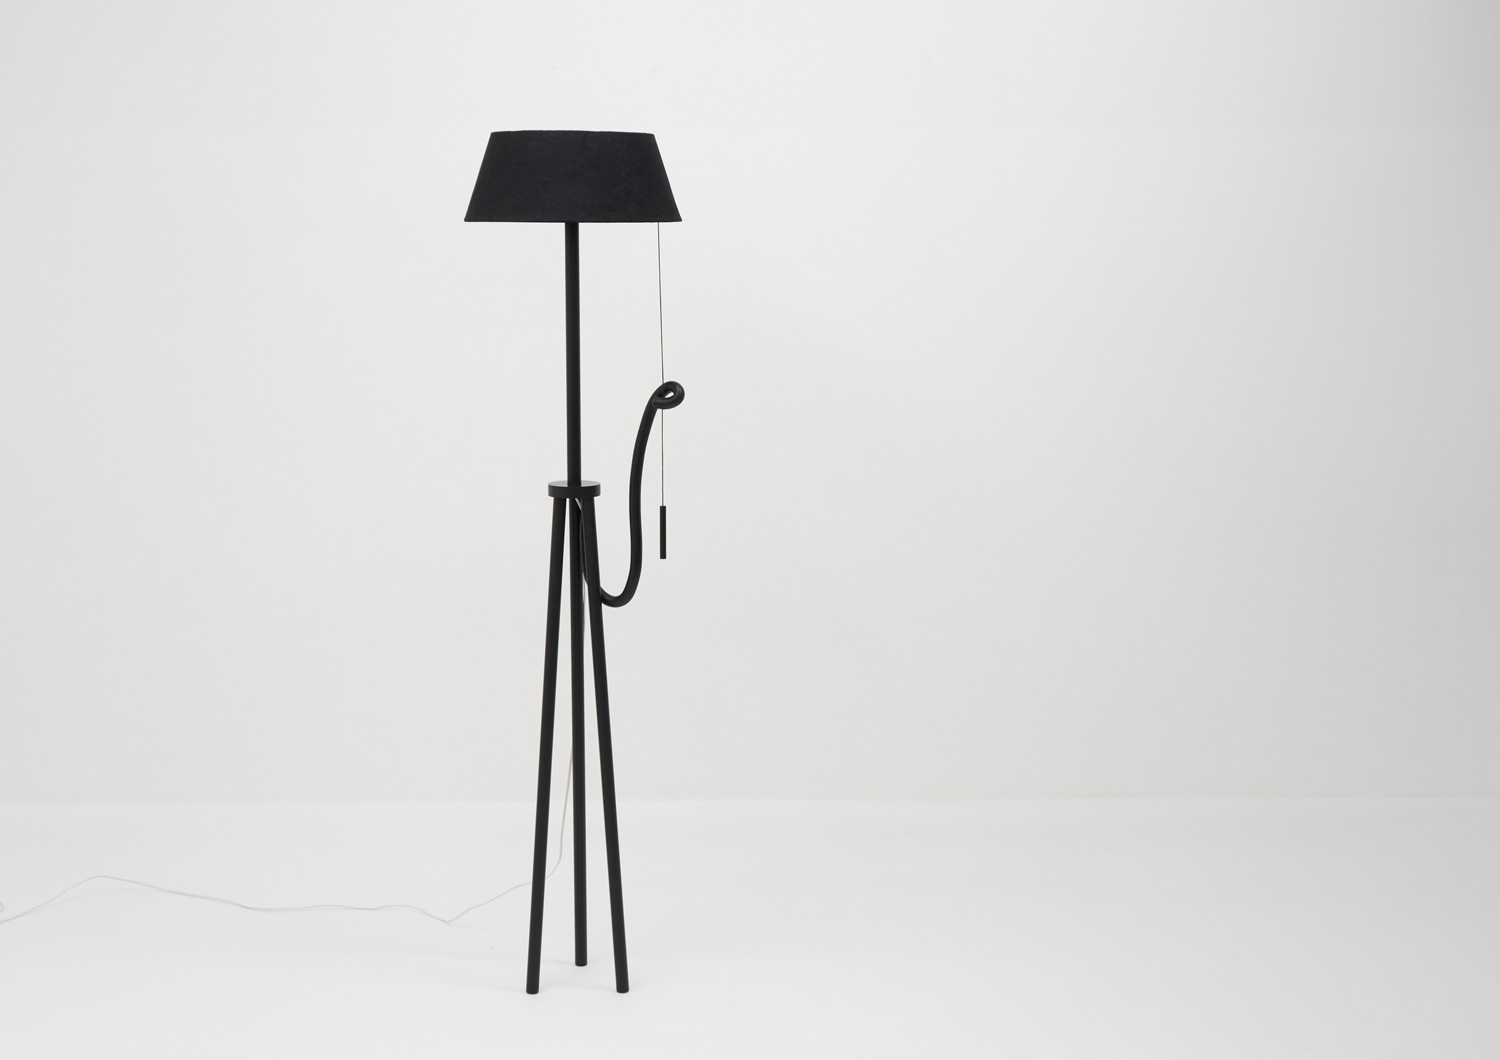 Angry Lamp by Xinyu Weng | Yellowtrace